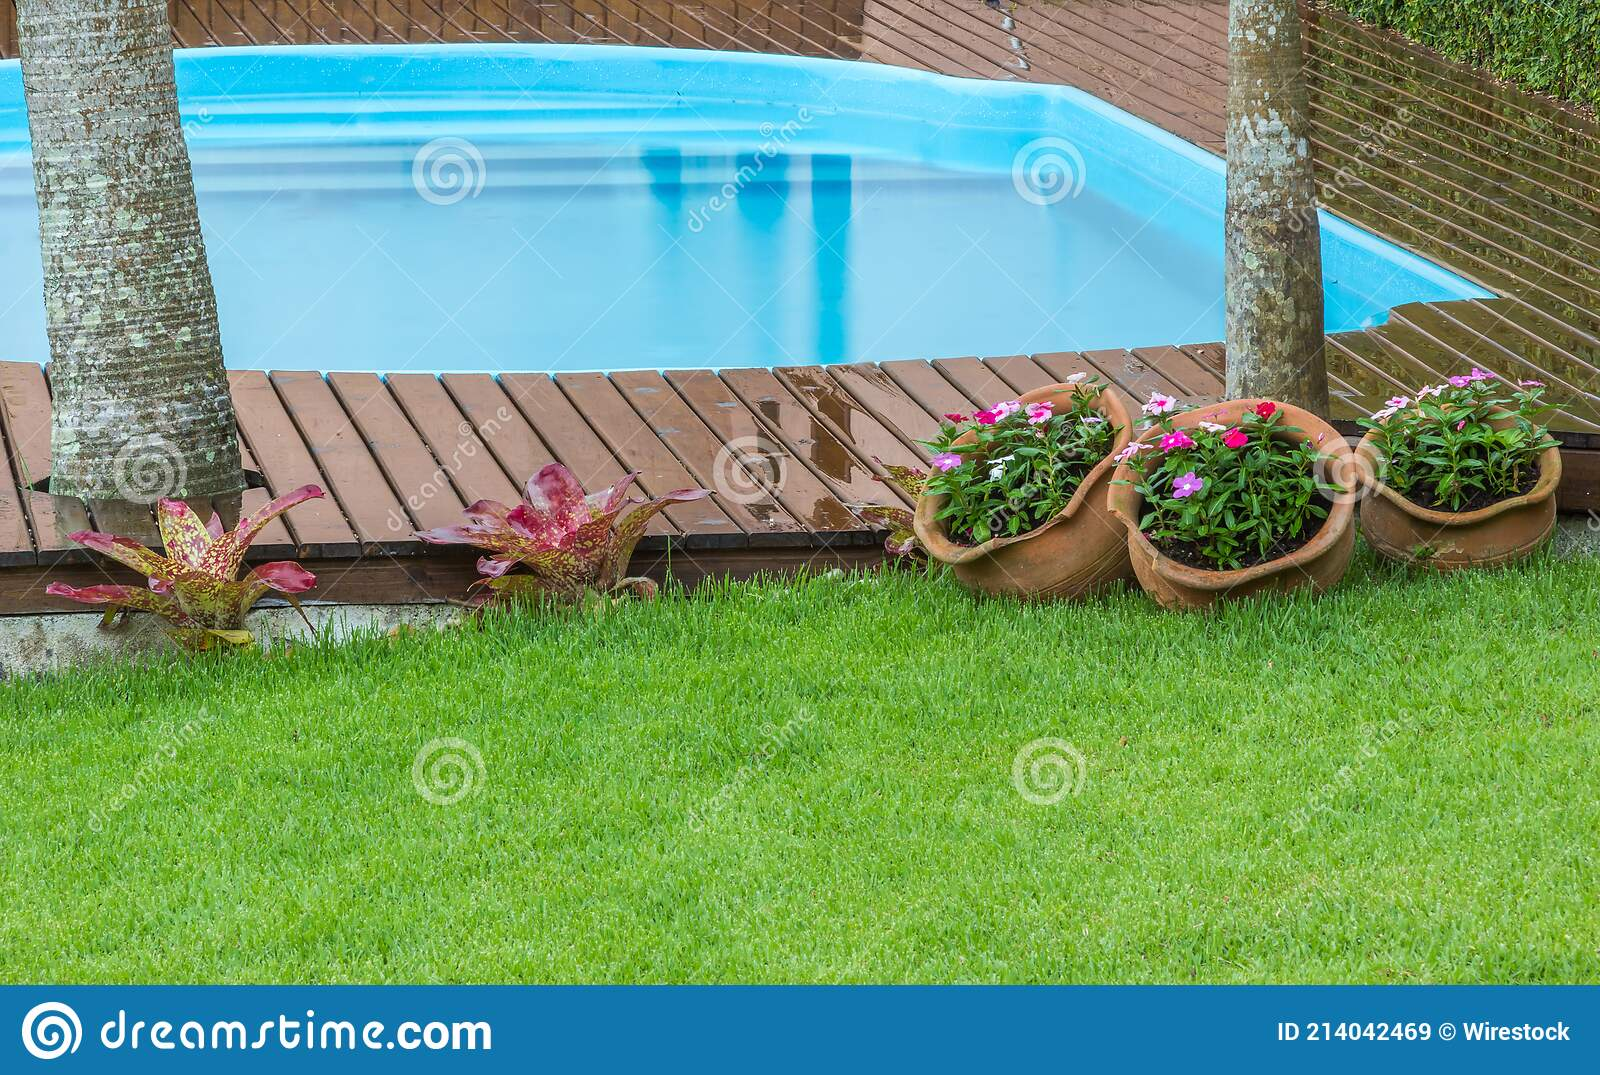 Fiberglass Pool Photos Free Royalty Free Stock Photos From Dreamstime